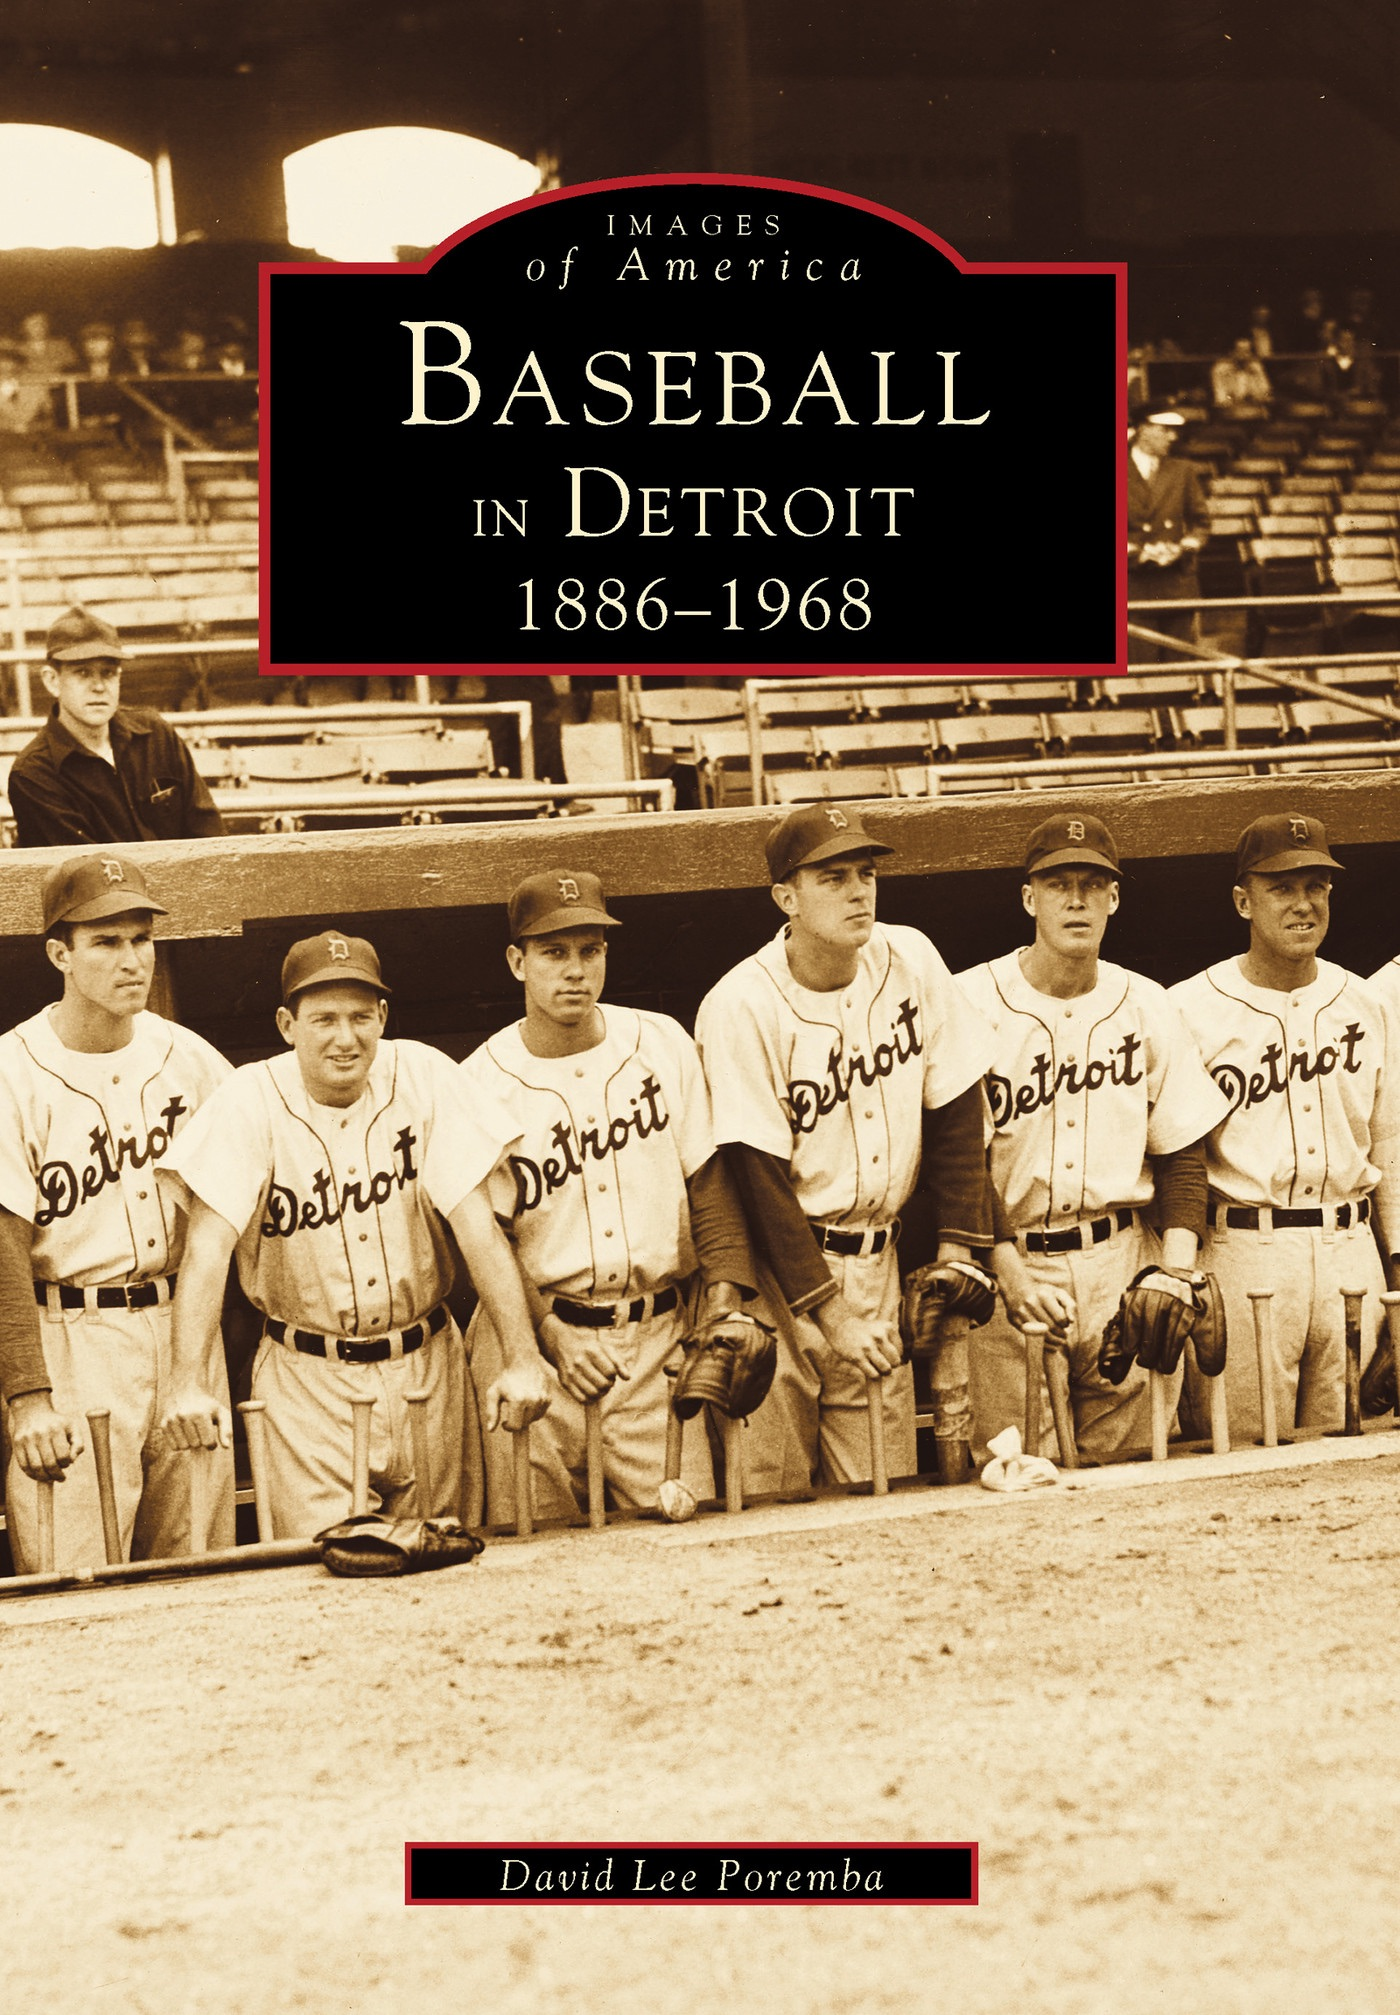 an analysis of the golden days of baseball in the historical baseball abstract California state university channel islands is ventura county's first public, four-year university.